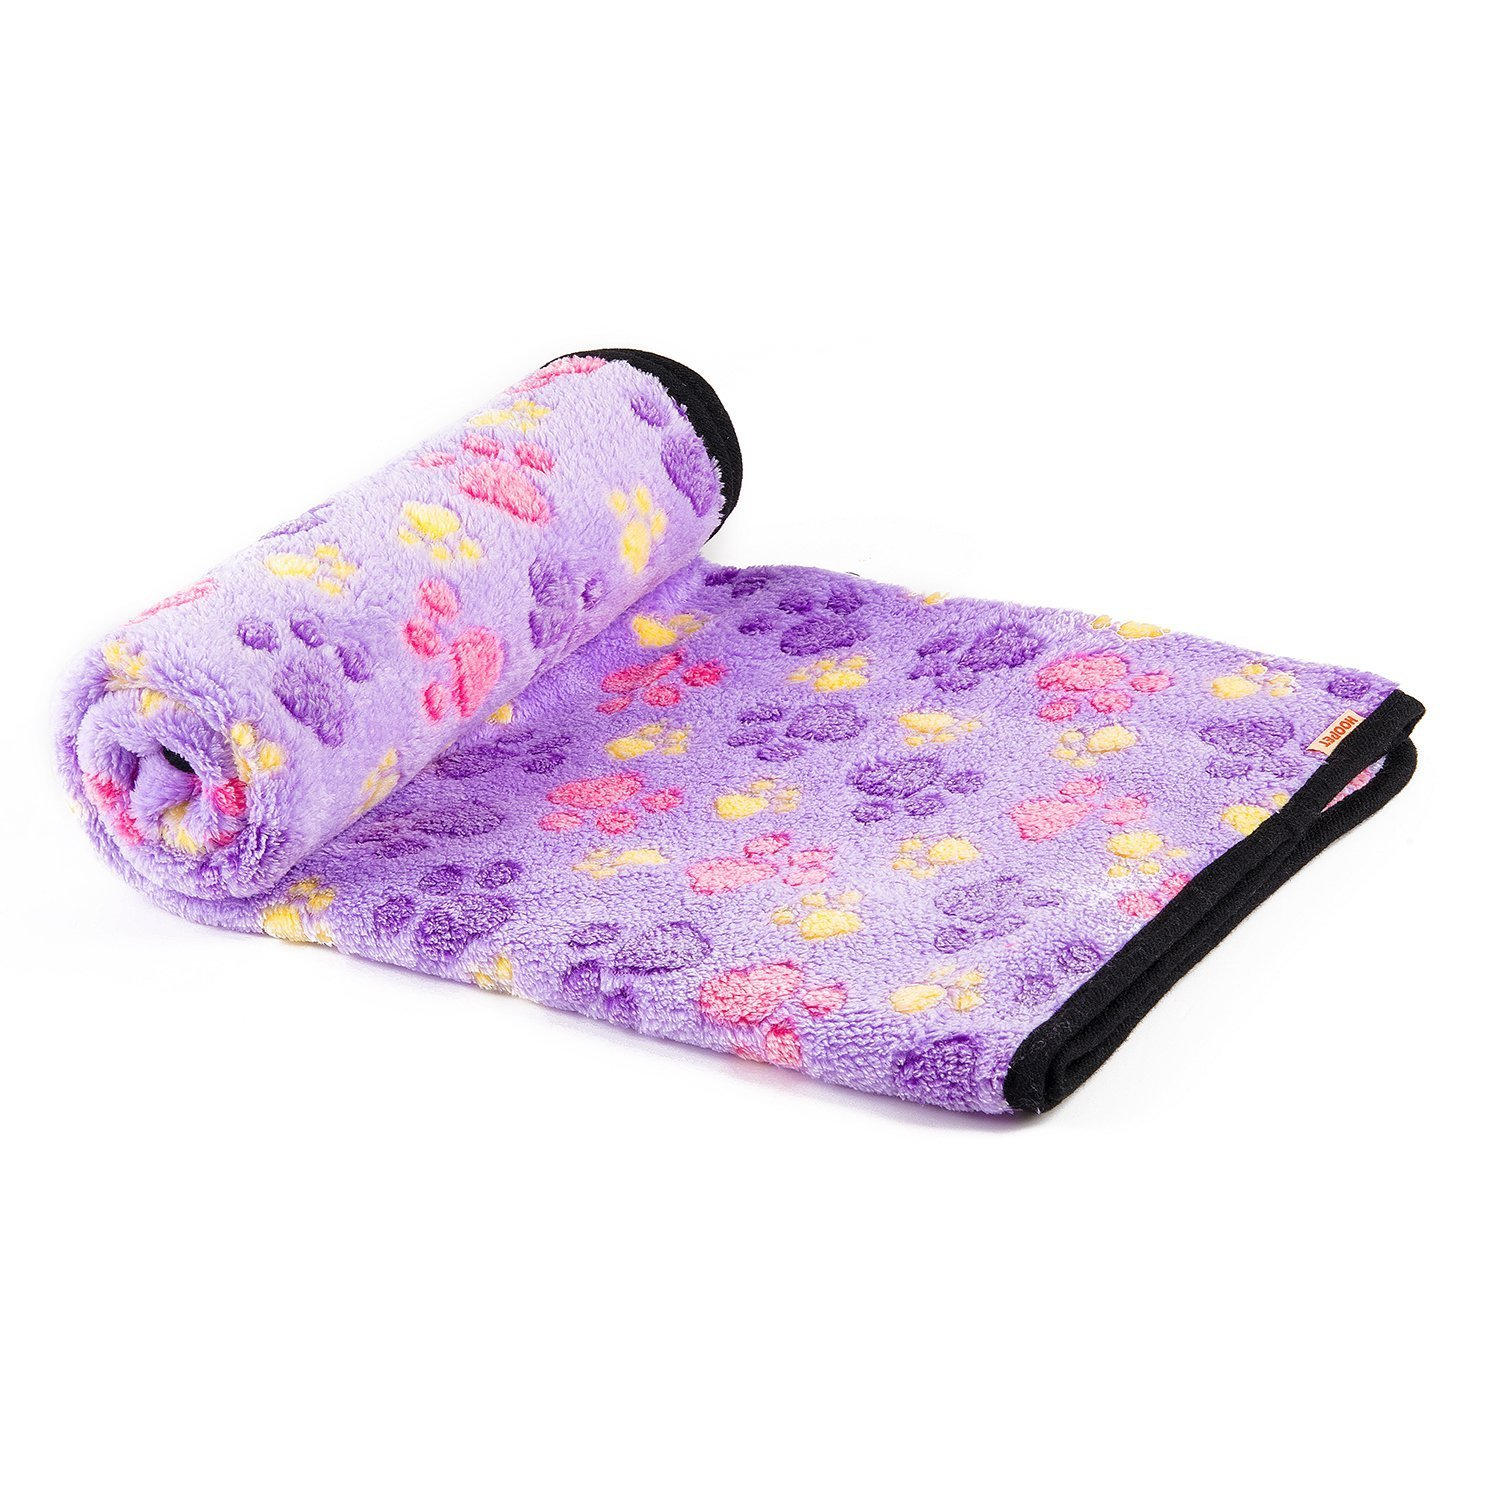 kiwitatá Soft Warm Fleece Pet Dog Blanket Puppy Paw Print Throw Blanket Bed Mat for Couch, Car, Cage, Kennel, Dog House